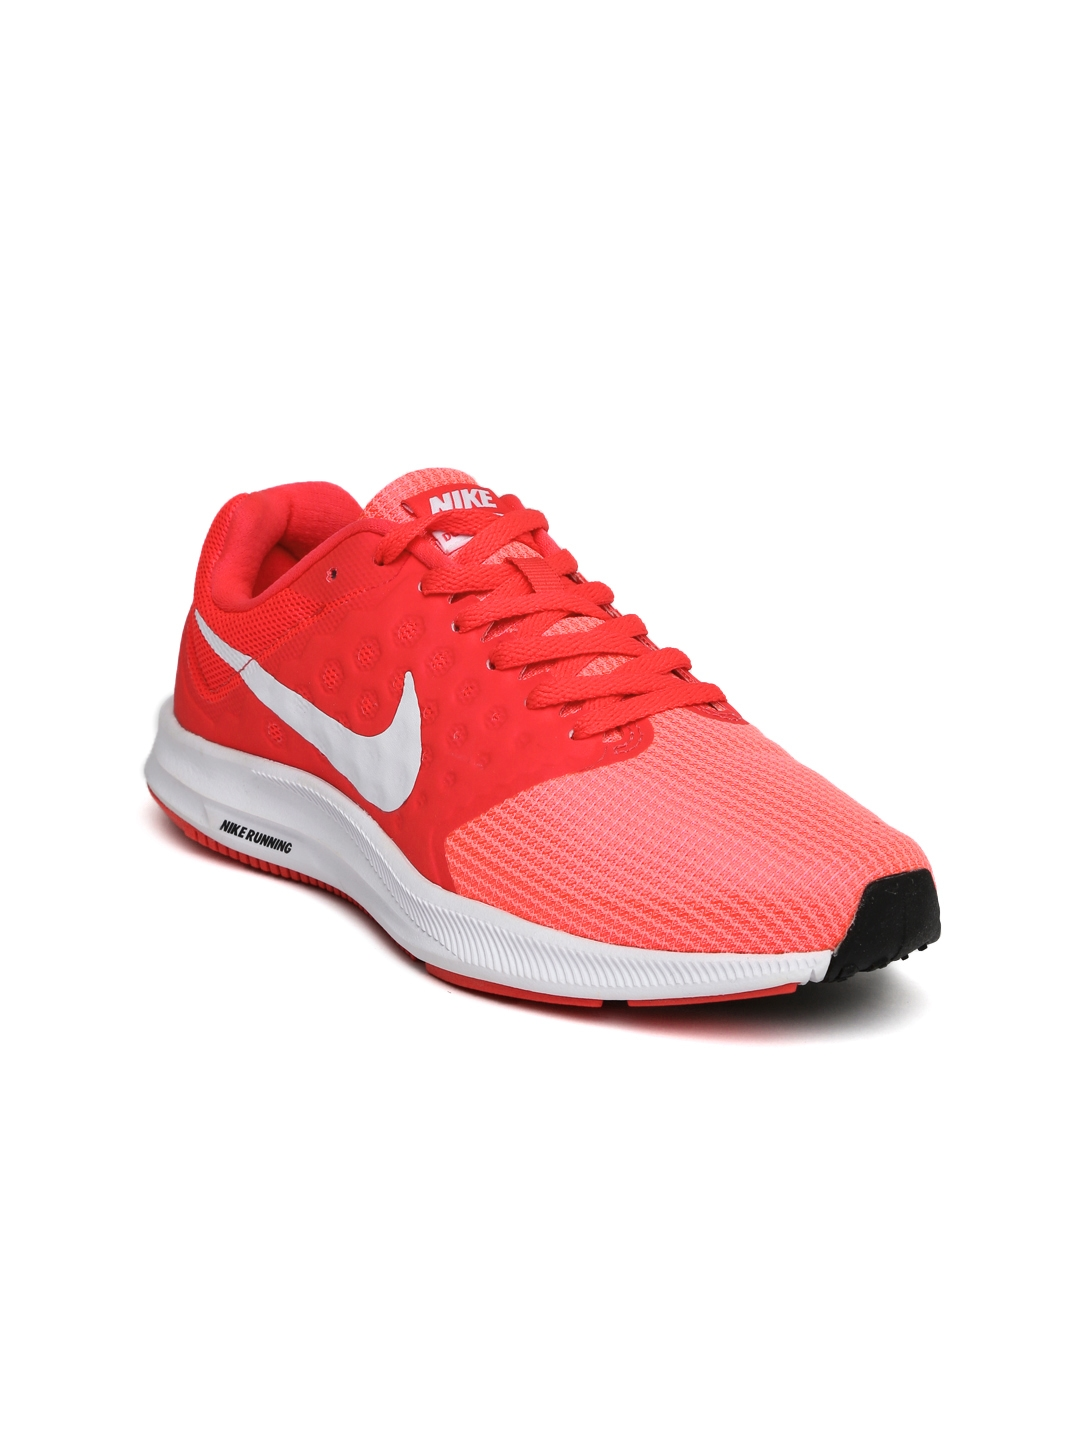 65e4ad9b62a Buy Nike Women Pink DOWNSHIFTER 7 Running Shoes - Sports Shoes for ...